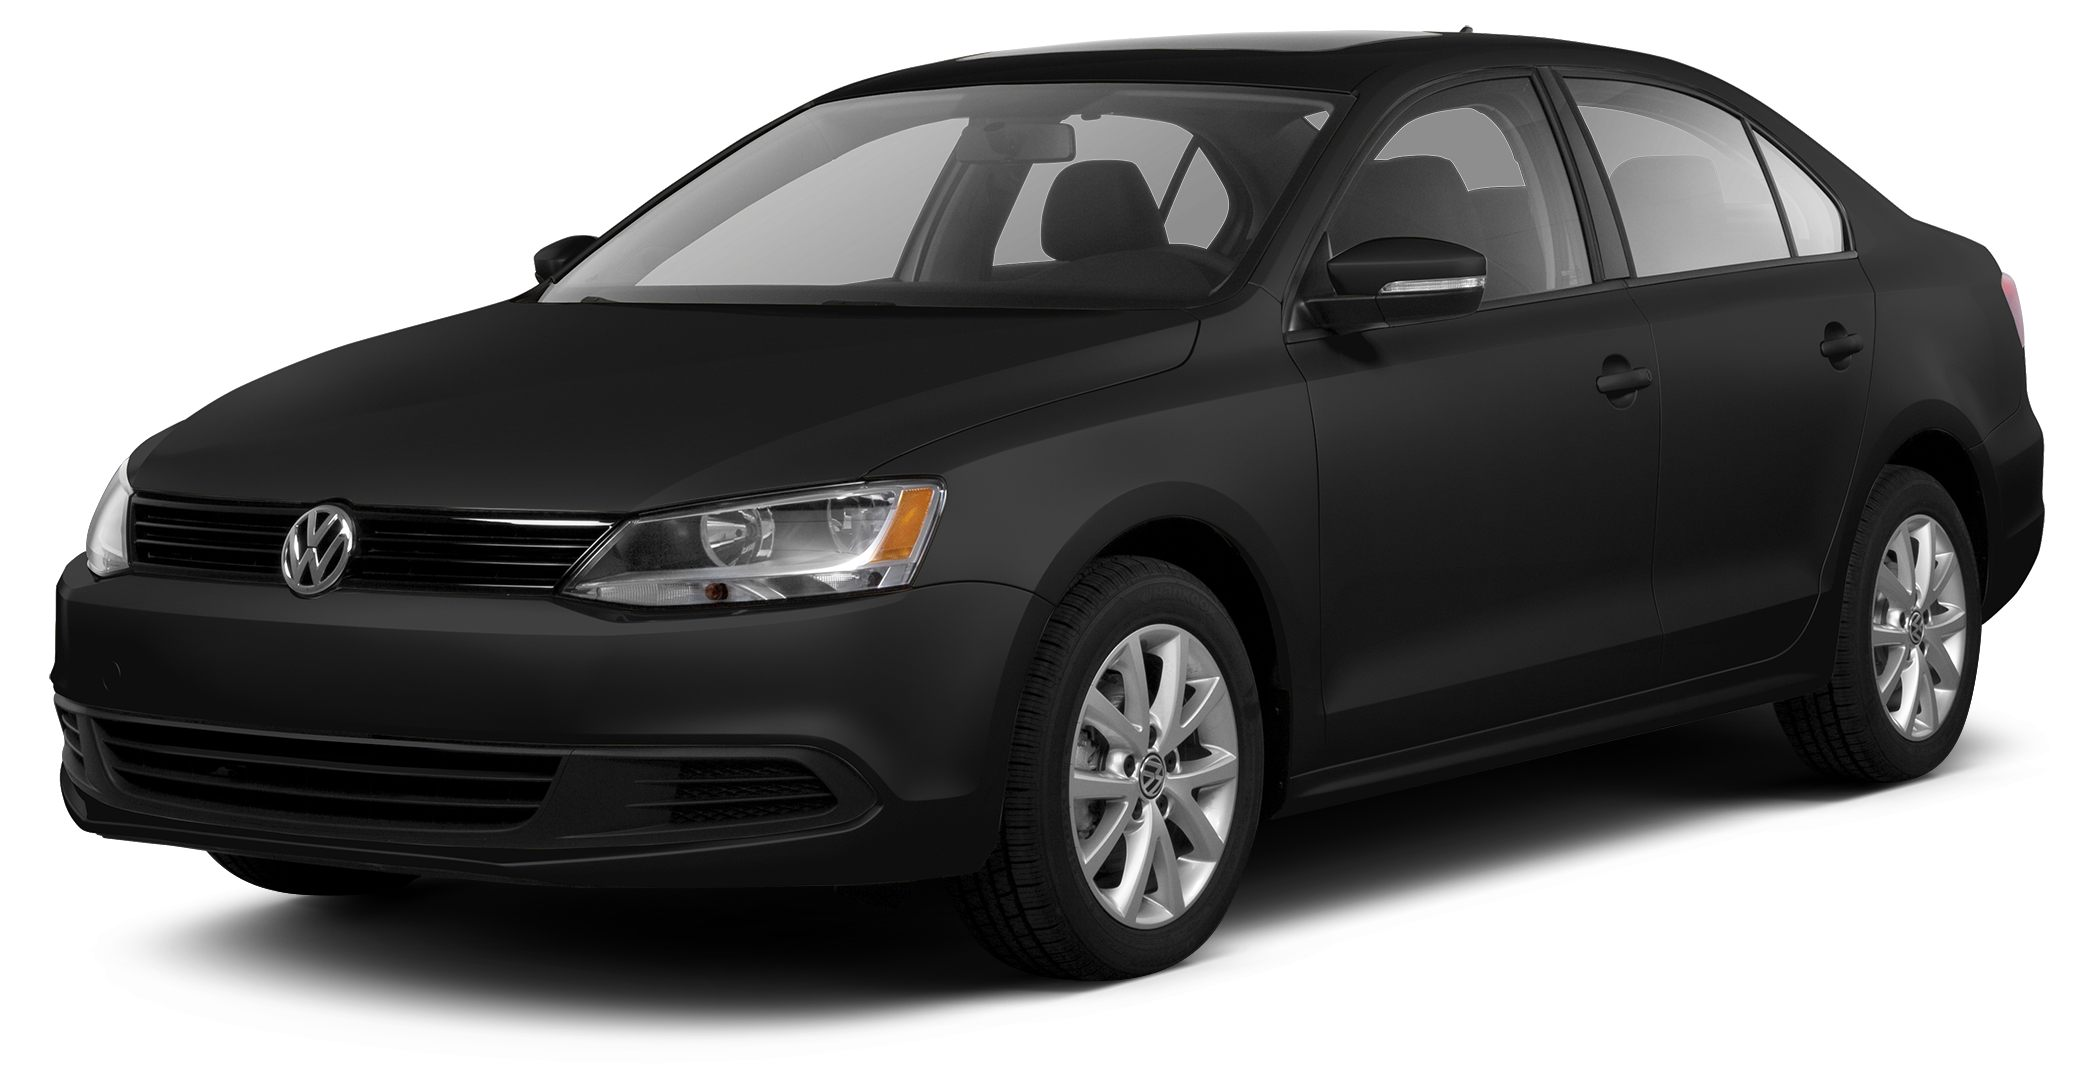 2013 Volkswagen Jetta 25 SE THIS VEHICLE COMES WITH OUR BEST PRICE GUARANTEE FIND A BETTER ON A